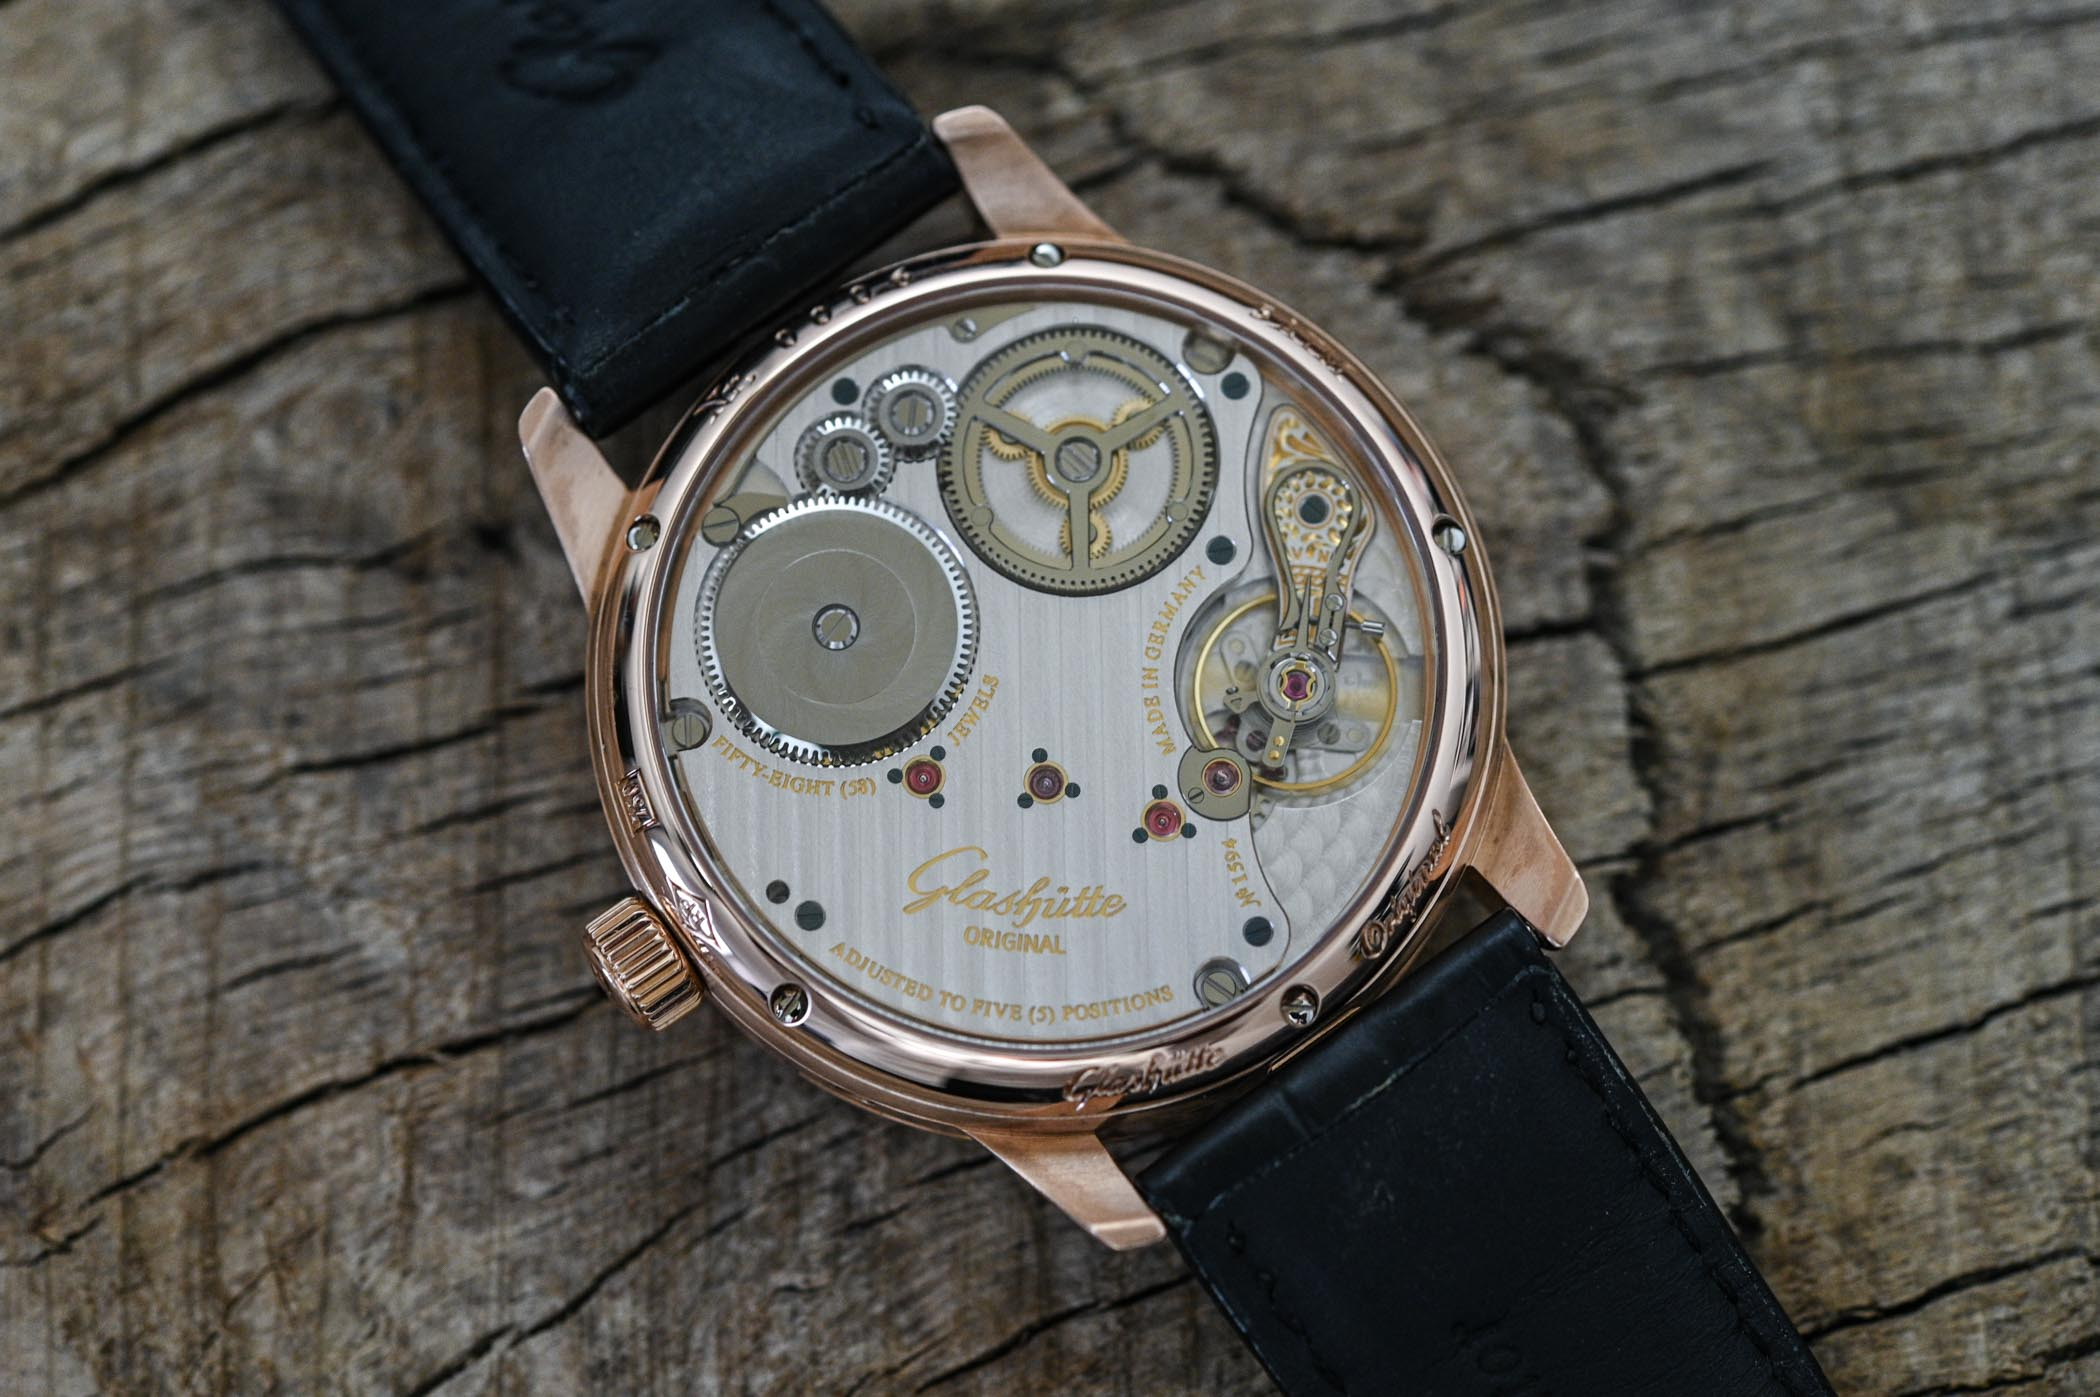 Glashutte Original Senator Chronometer Regulator